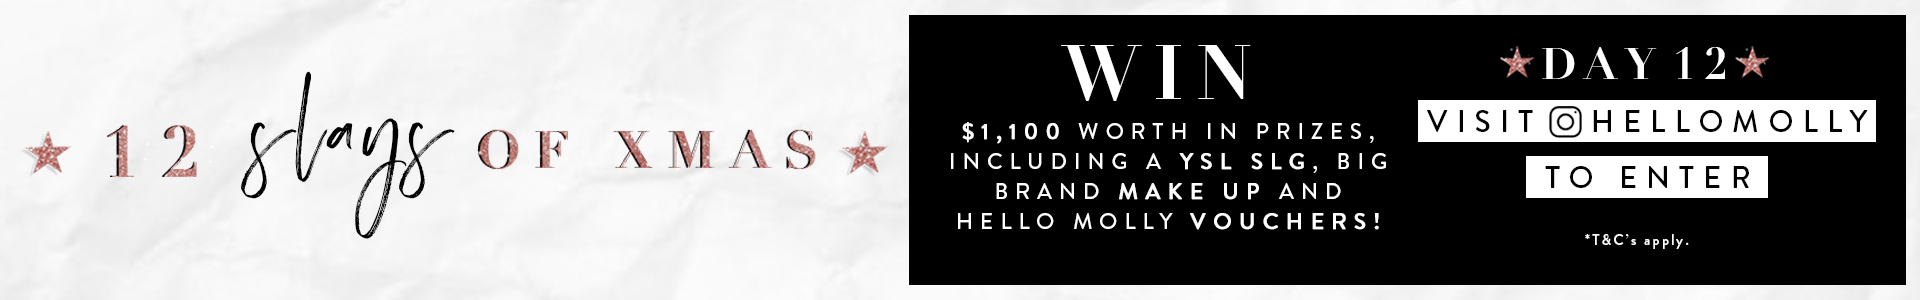 Win $1,100 worth of goodies!